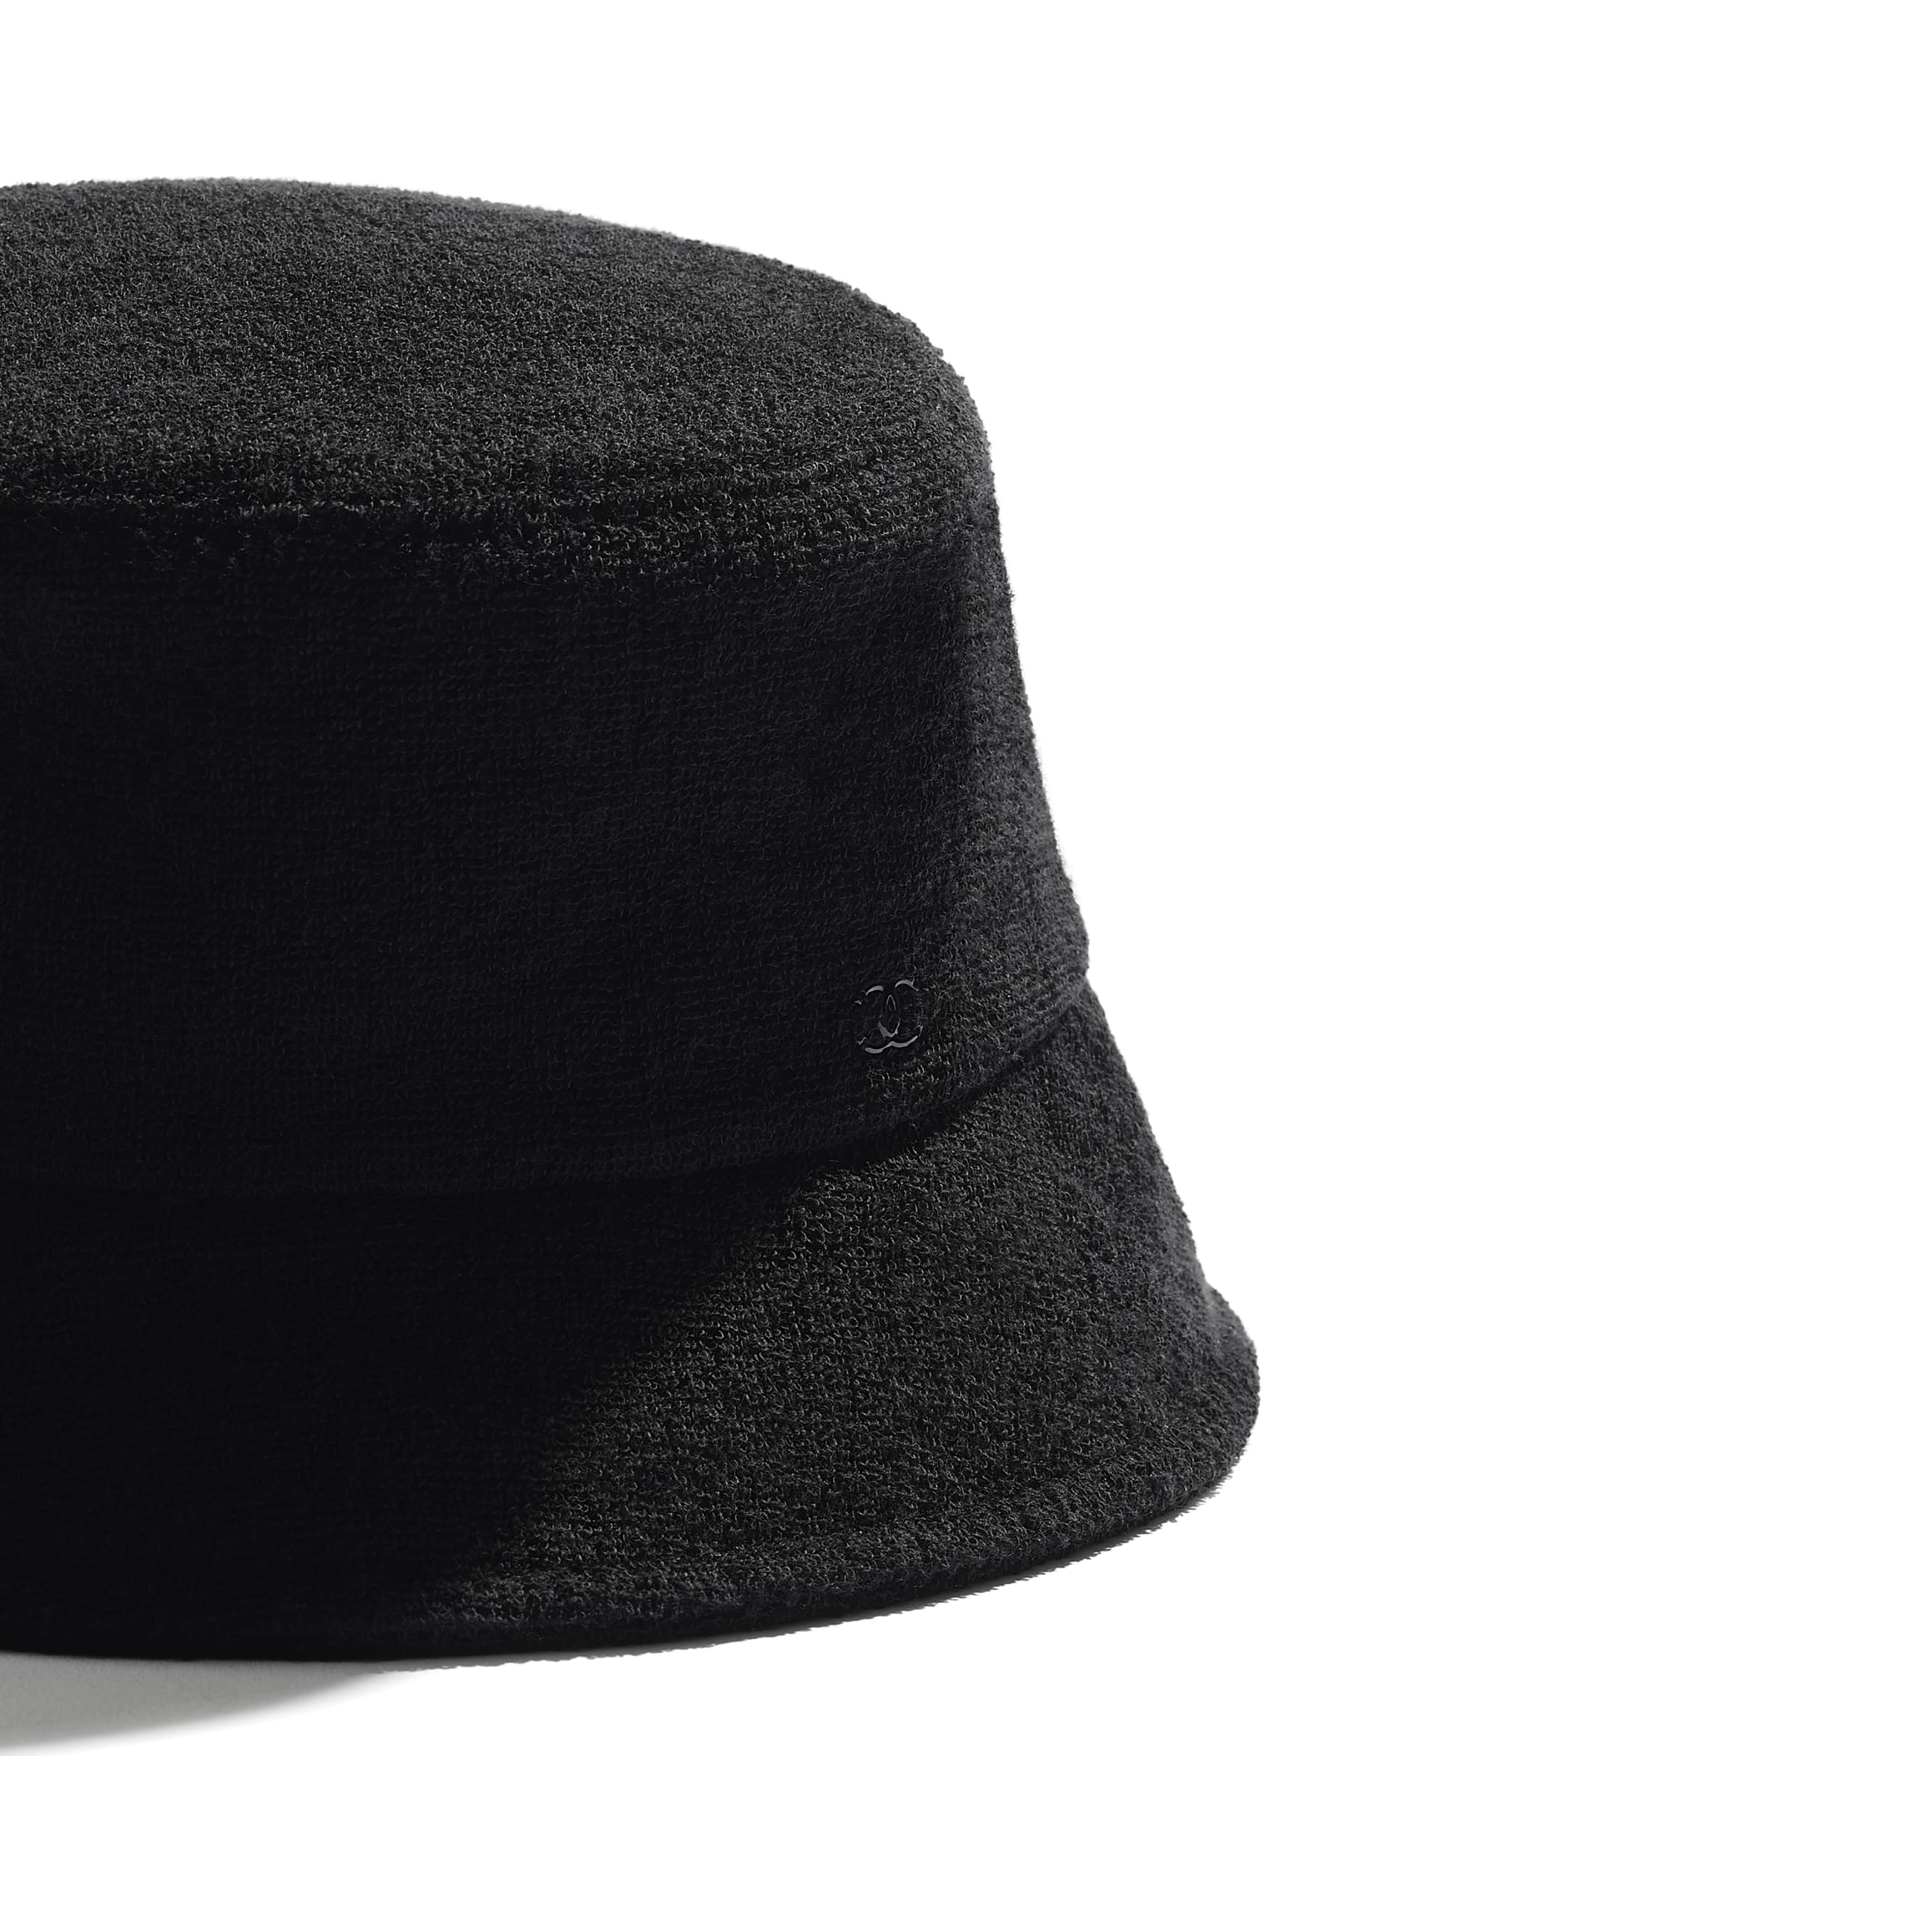 Hat - Black - Cotton Terrycloth - CHANEL - Alternative view - see standard sized version